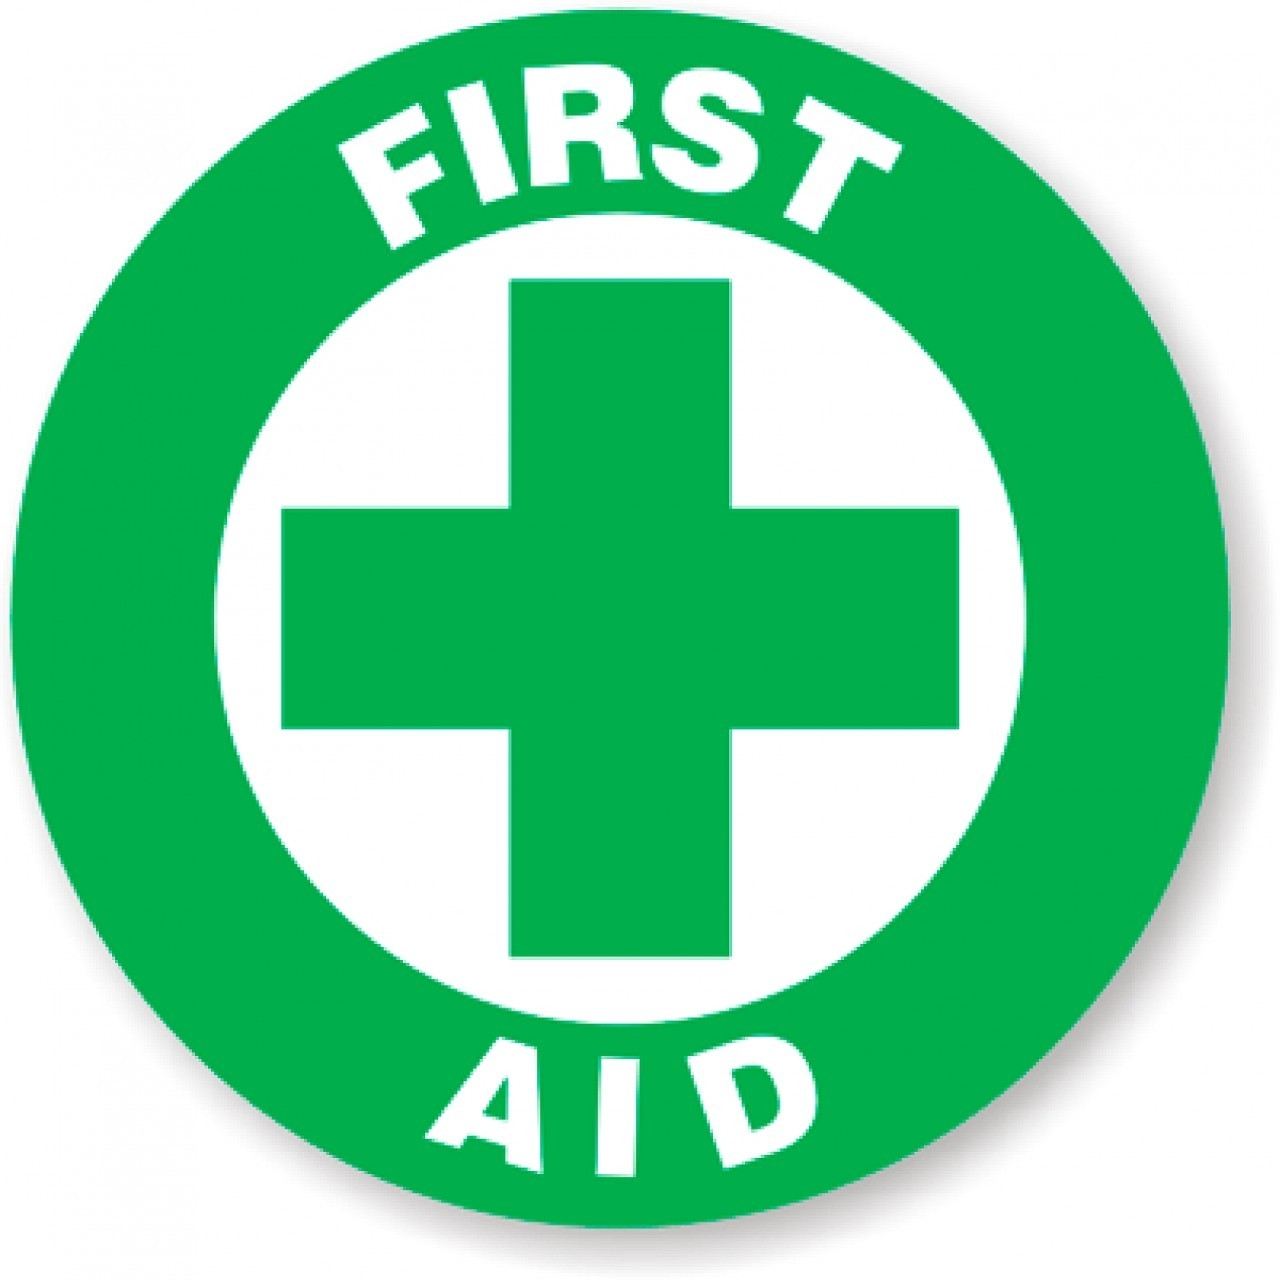 First aid clipart Unique First Aid Clipart Free Download Clip Art.